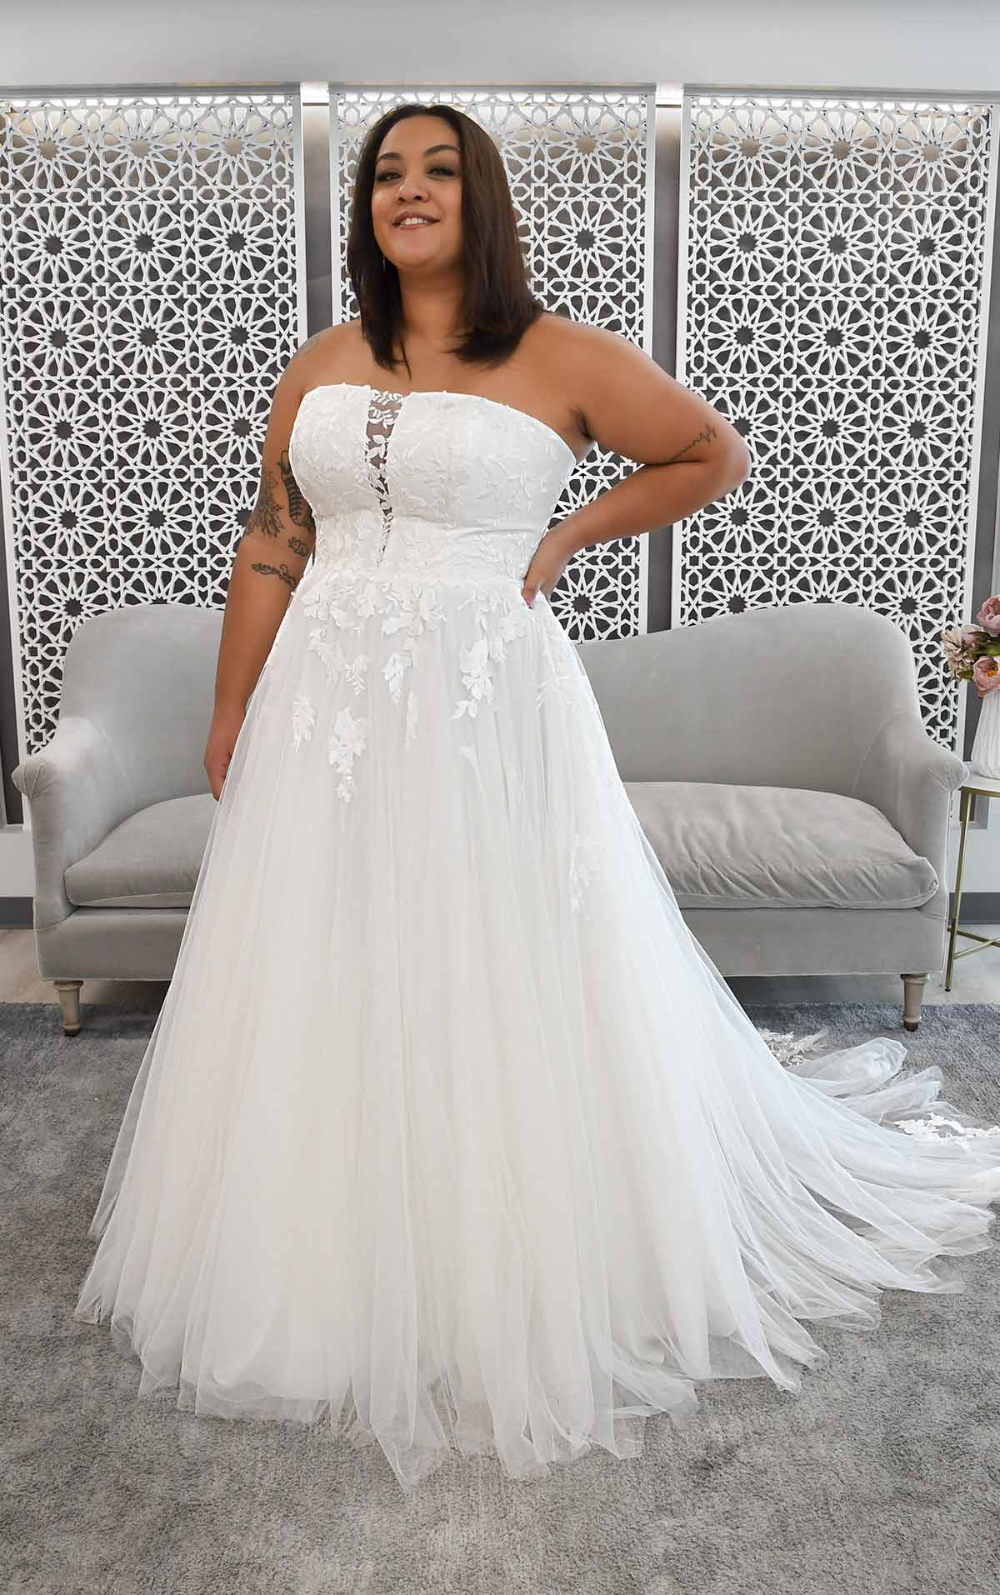 Strapless A Line Plus Size Wedding Dress With Illusion Plunge Stella York Wedding Dresses In 2021 Stella York Wedding Dress York Wedding Dress Wedding Dresses [ 1595 x 1000 Pixel ]